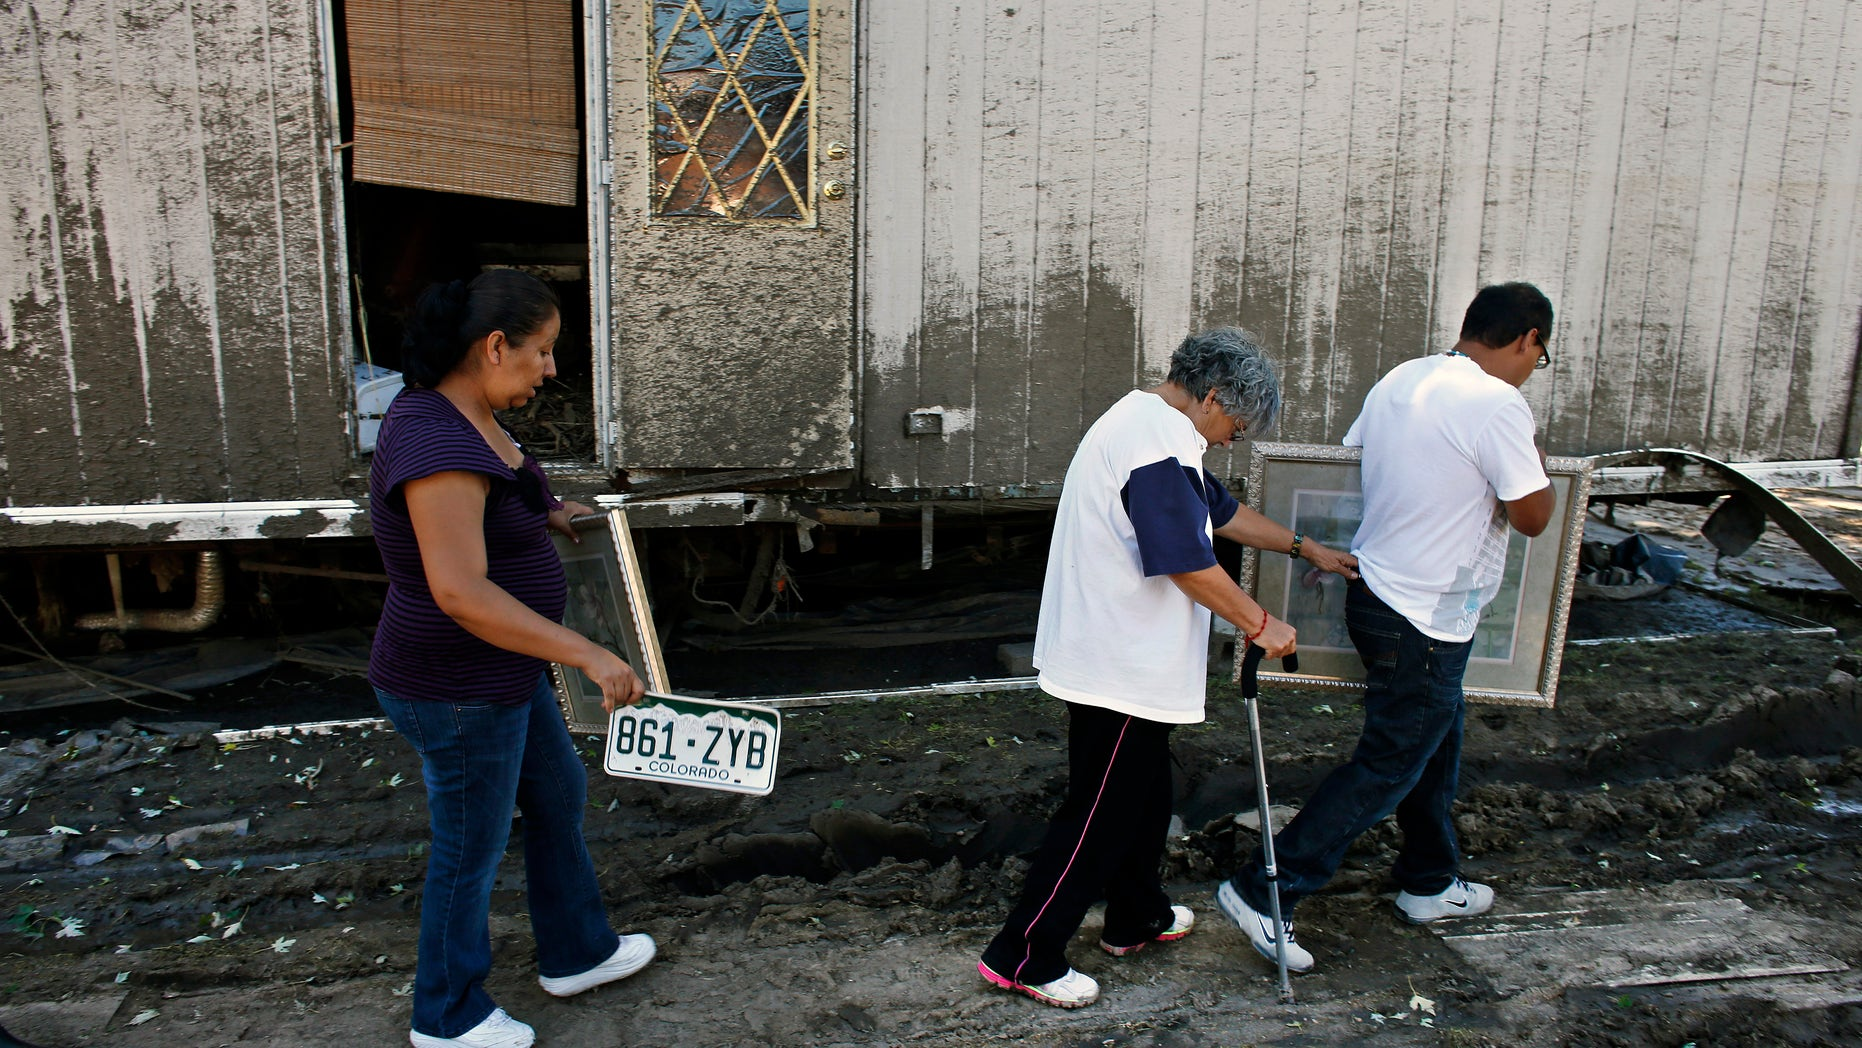 In this Sept. 24, 2013, photo, resident Mari Partida, left, walks with the plate from her destroyed car, as her neighbor Sofia Mendez leans on her son for support as he carries a painting recovered from their trailer, one of the many homes now declared uninhabitable due to permanent flood damage at a trailer park in Evans, Colo. Many undocumented immigrants working in the U.S. have returned to their mobile home parks in flood-ravaged Colorado to find that there was little left to salvage. Like many in the stricken region, they didnt have flood insurance. And because many are not citizens or legal residents, they cant get government help. (AP Photo/Brennan Linsley)